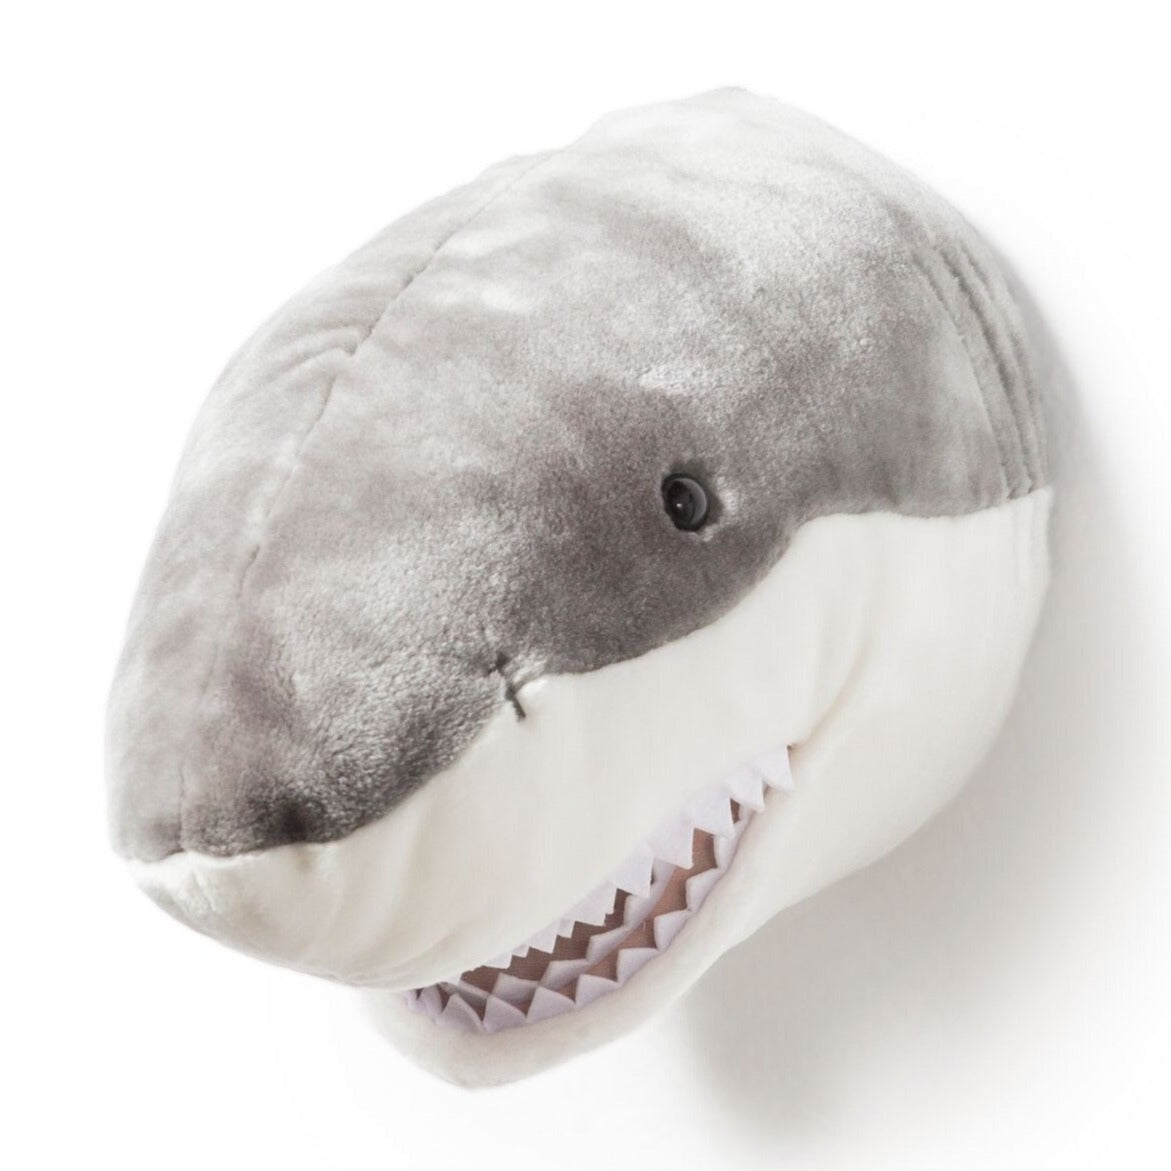 Wild and Soft Jack the Shark head plush wall decor.